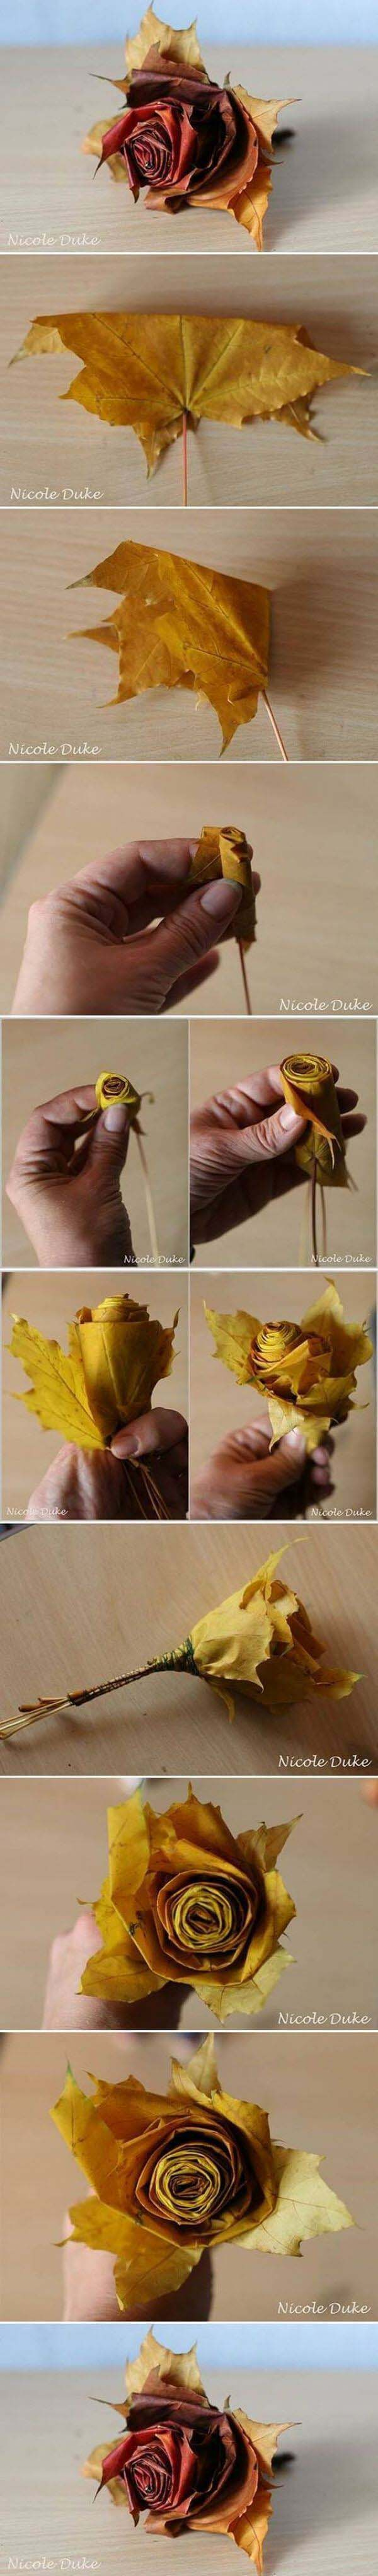 23. Rolled Paper Rose Update with Fall Foliage #fall #leaf #crafts #decorhomeideas